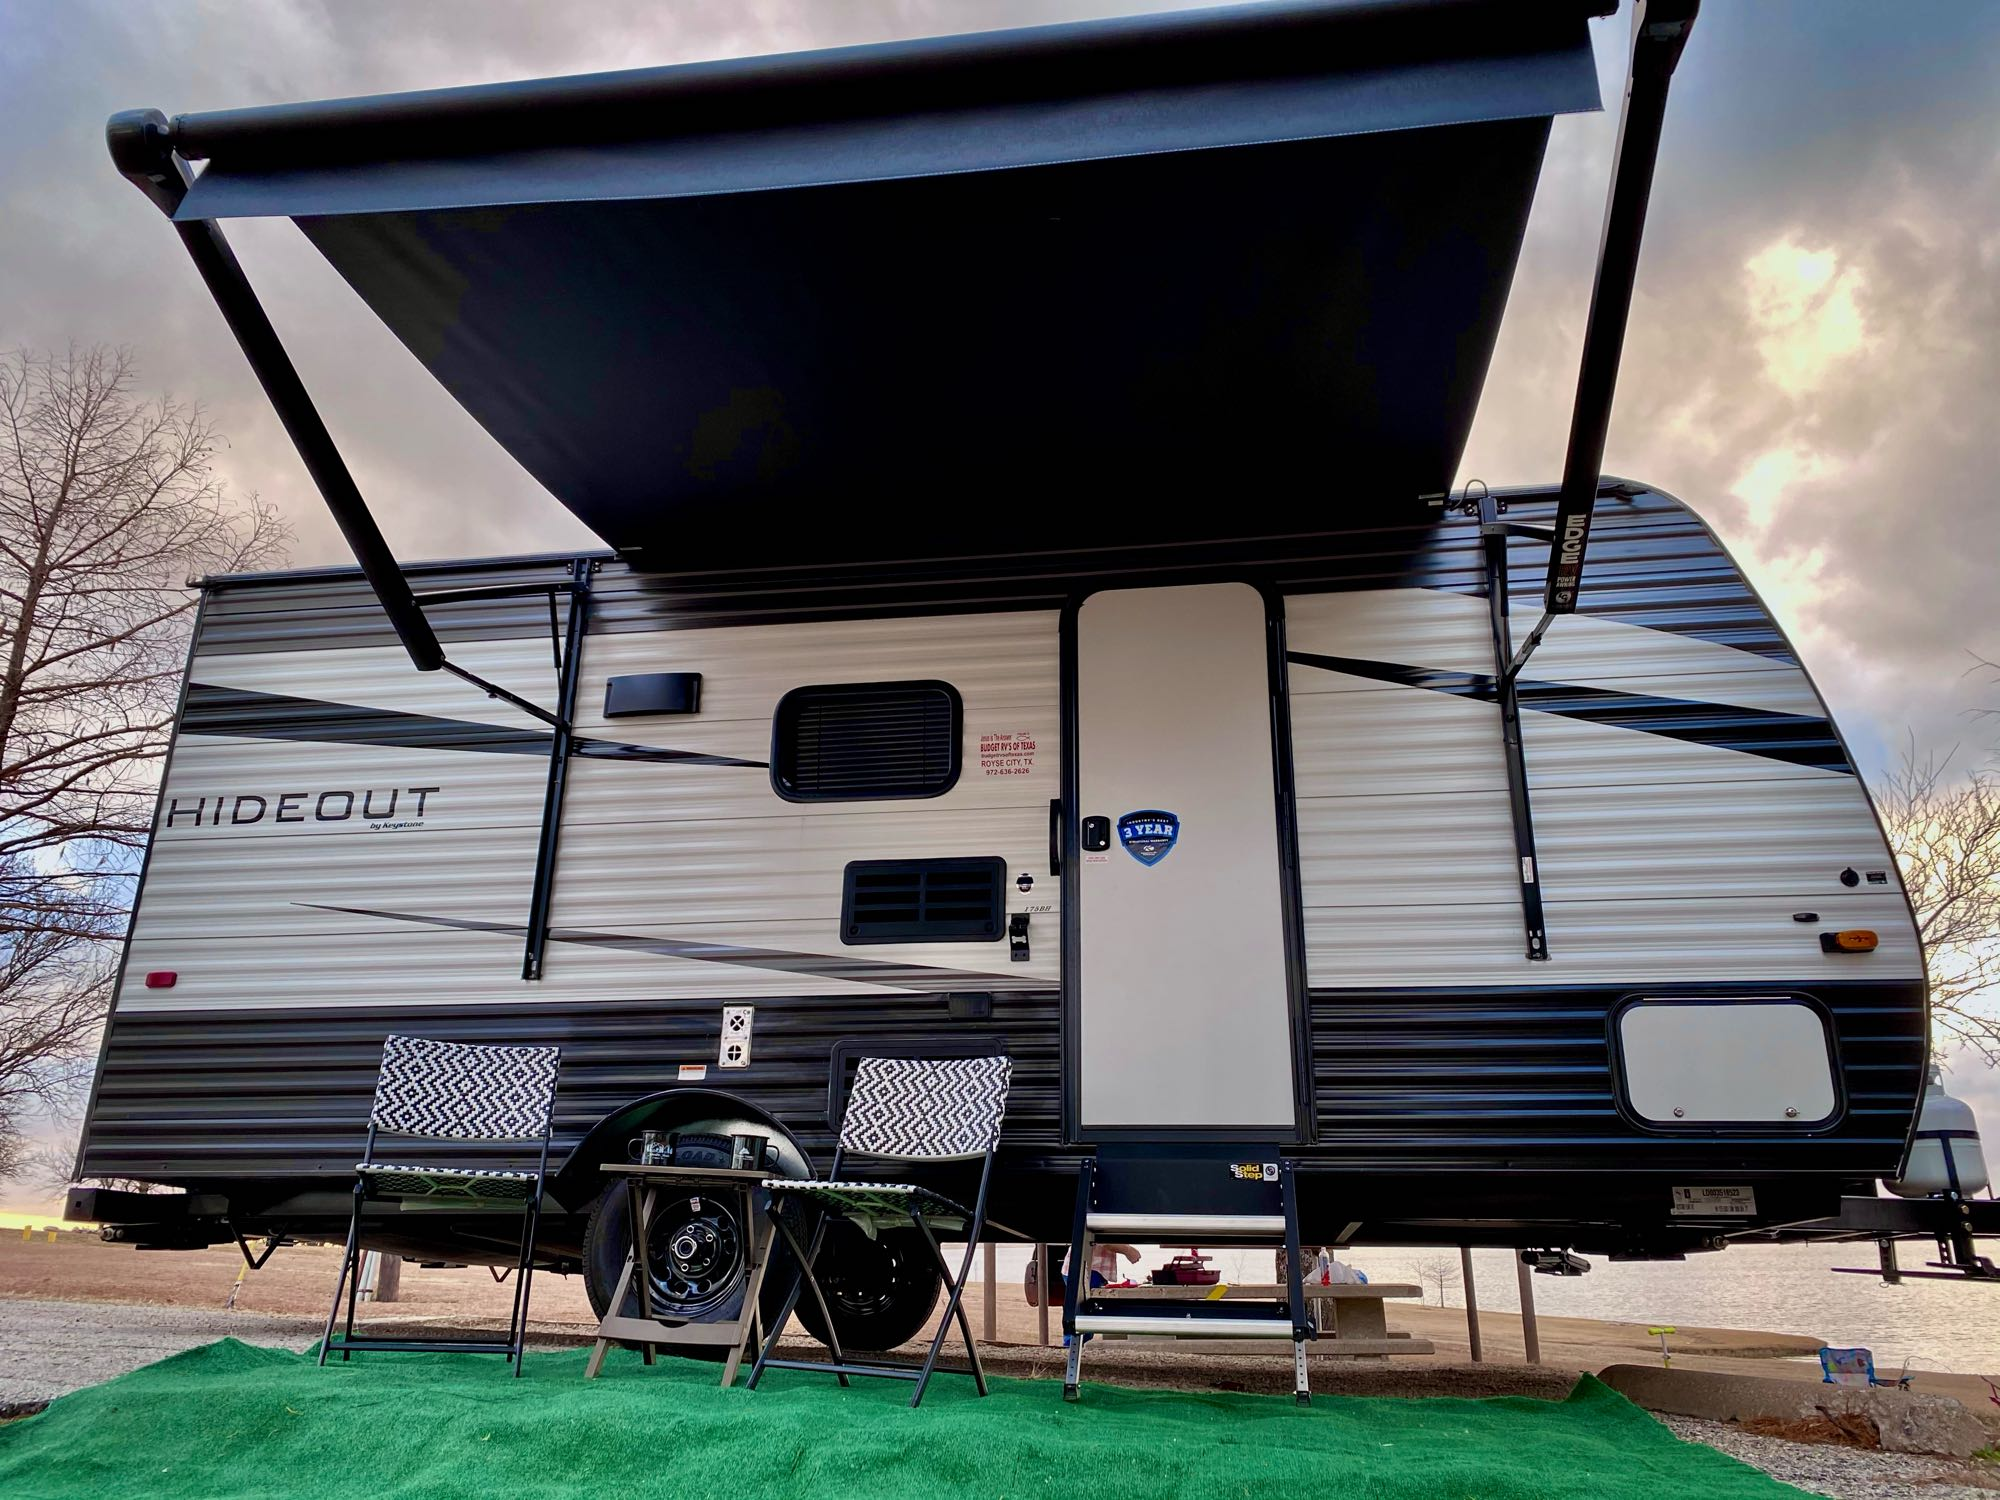 Large awning for shade. Keystone Hideout 2021